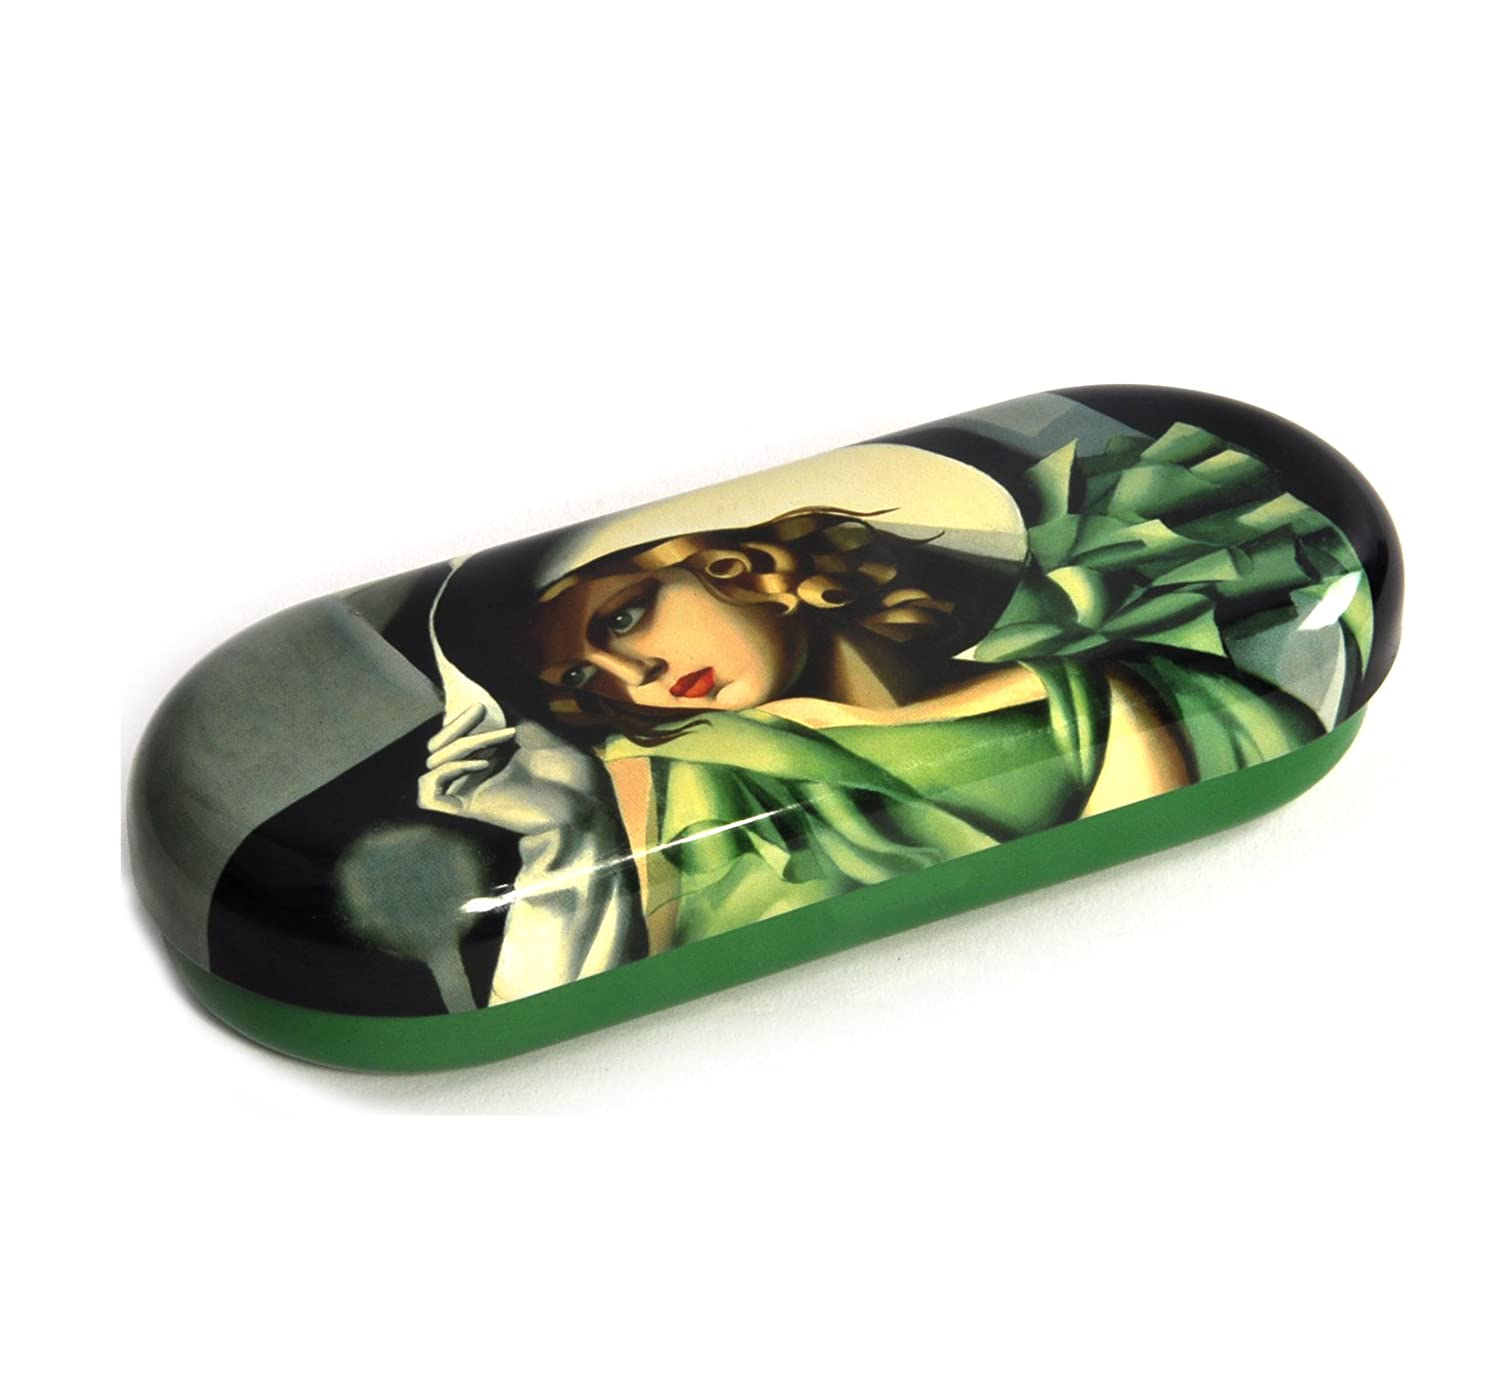 Fridolin 18731Lempicka Young Lady with Gloves Multi-Coloured Metal Glasses Case 16x 6.6x 2,8cm